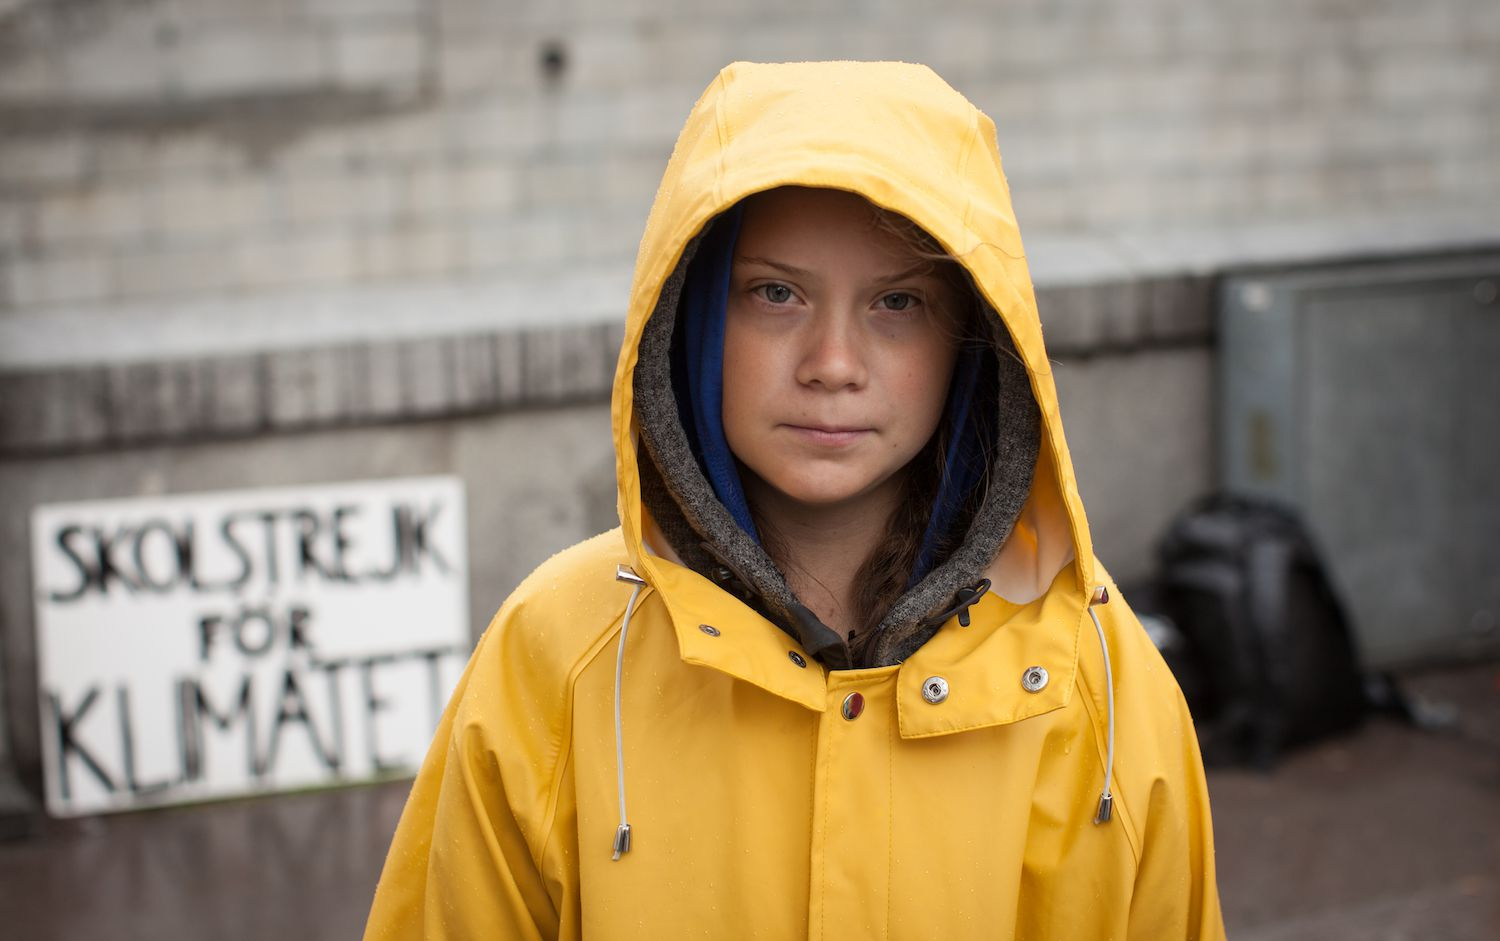 Young child in a yellow rain slicker staring at camera